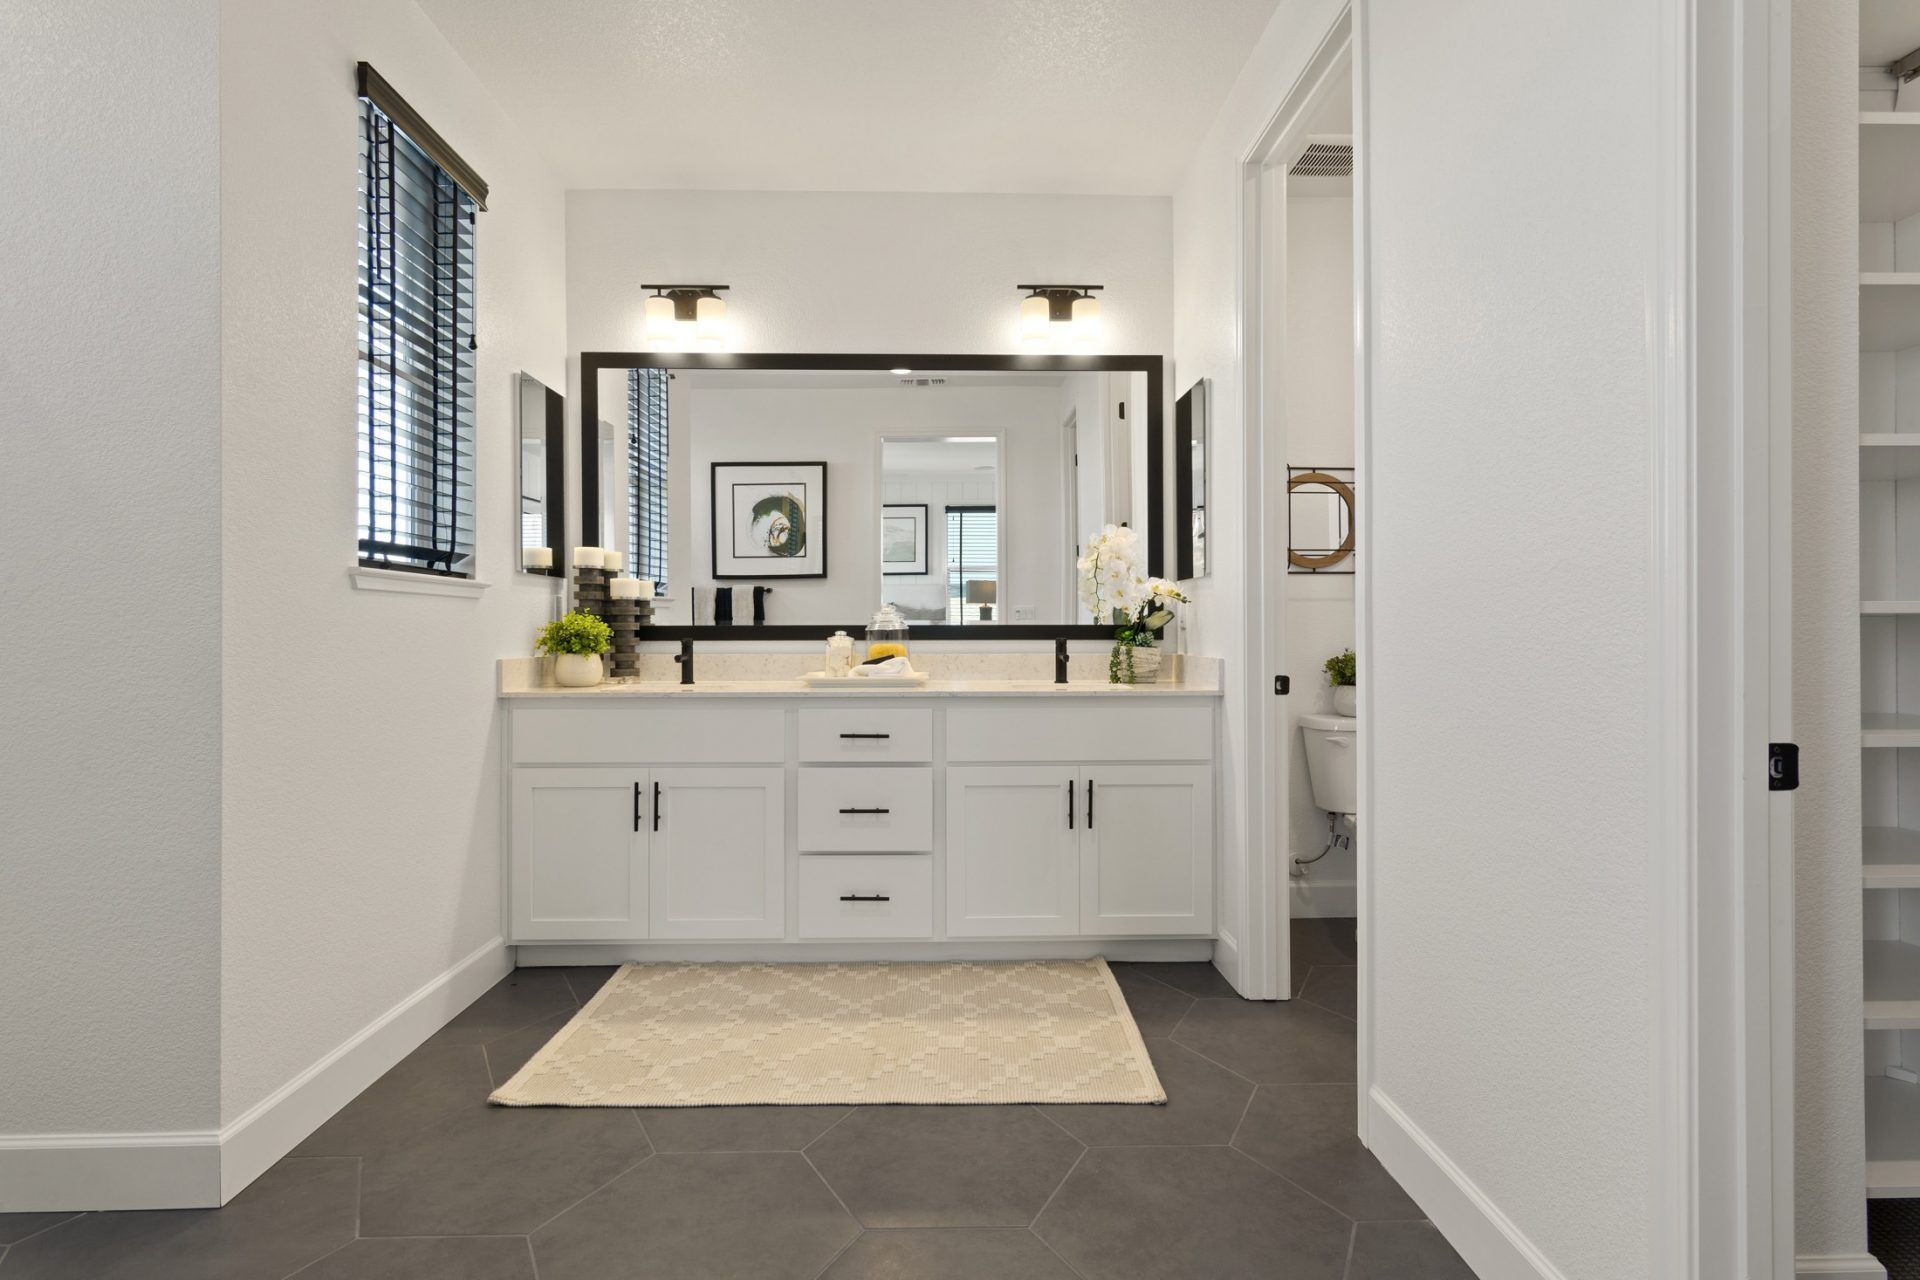 Bathroom featured in the Azure By Blue Mountain Communities in Oakland-Alameda, CA